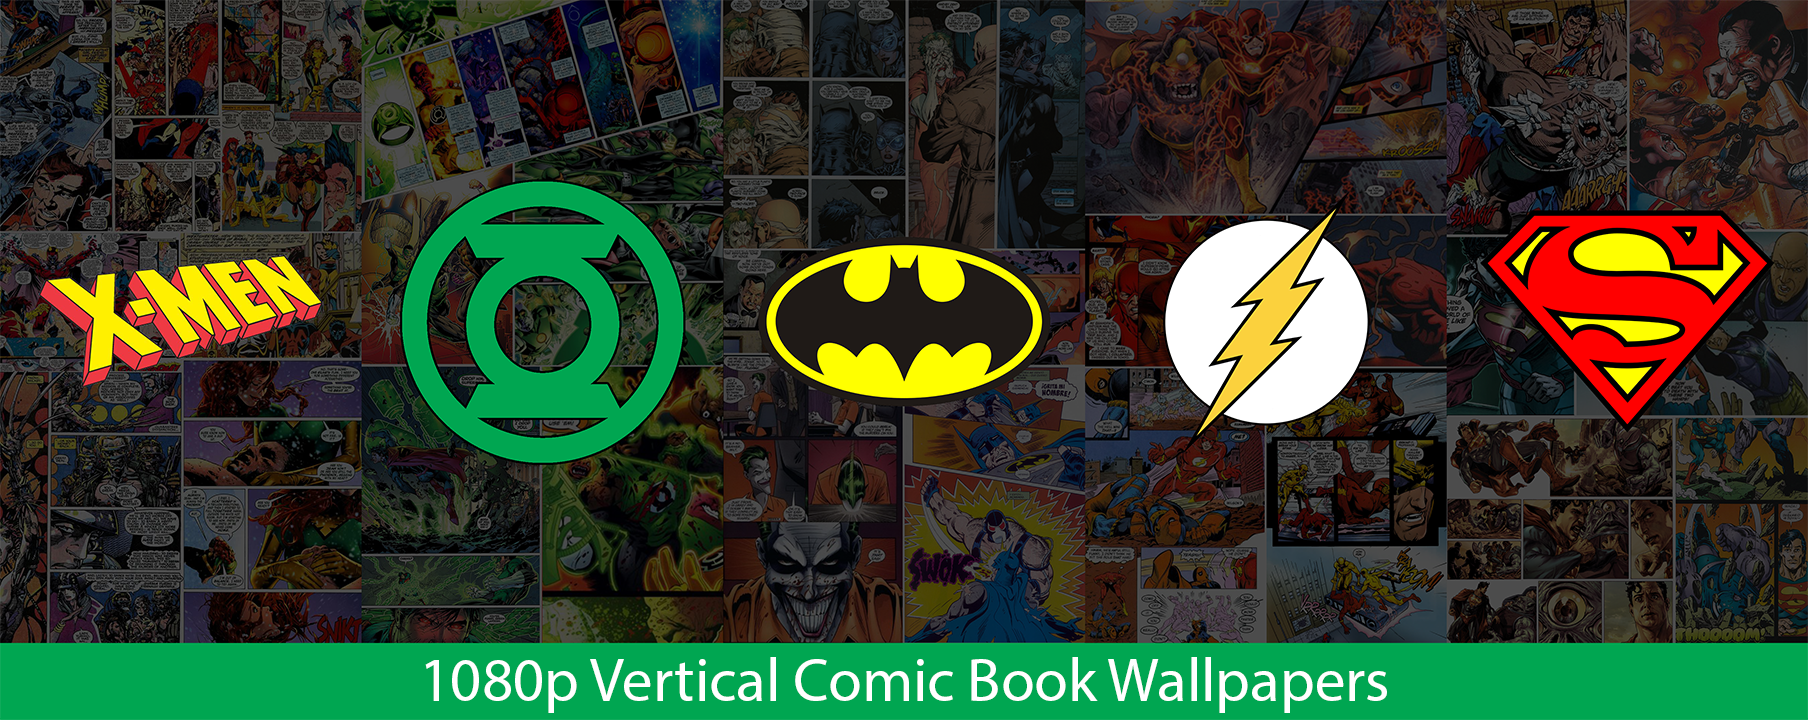 comic wallpaper with book - photo #32